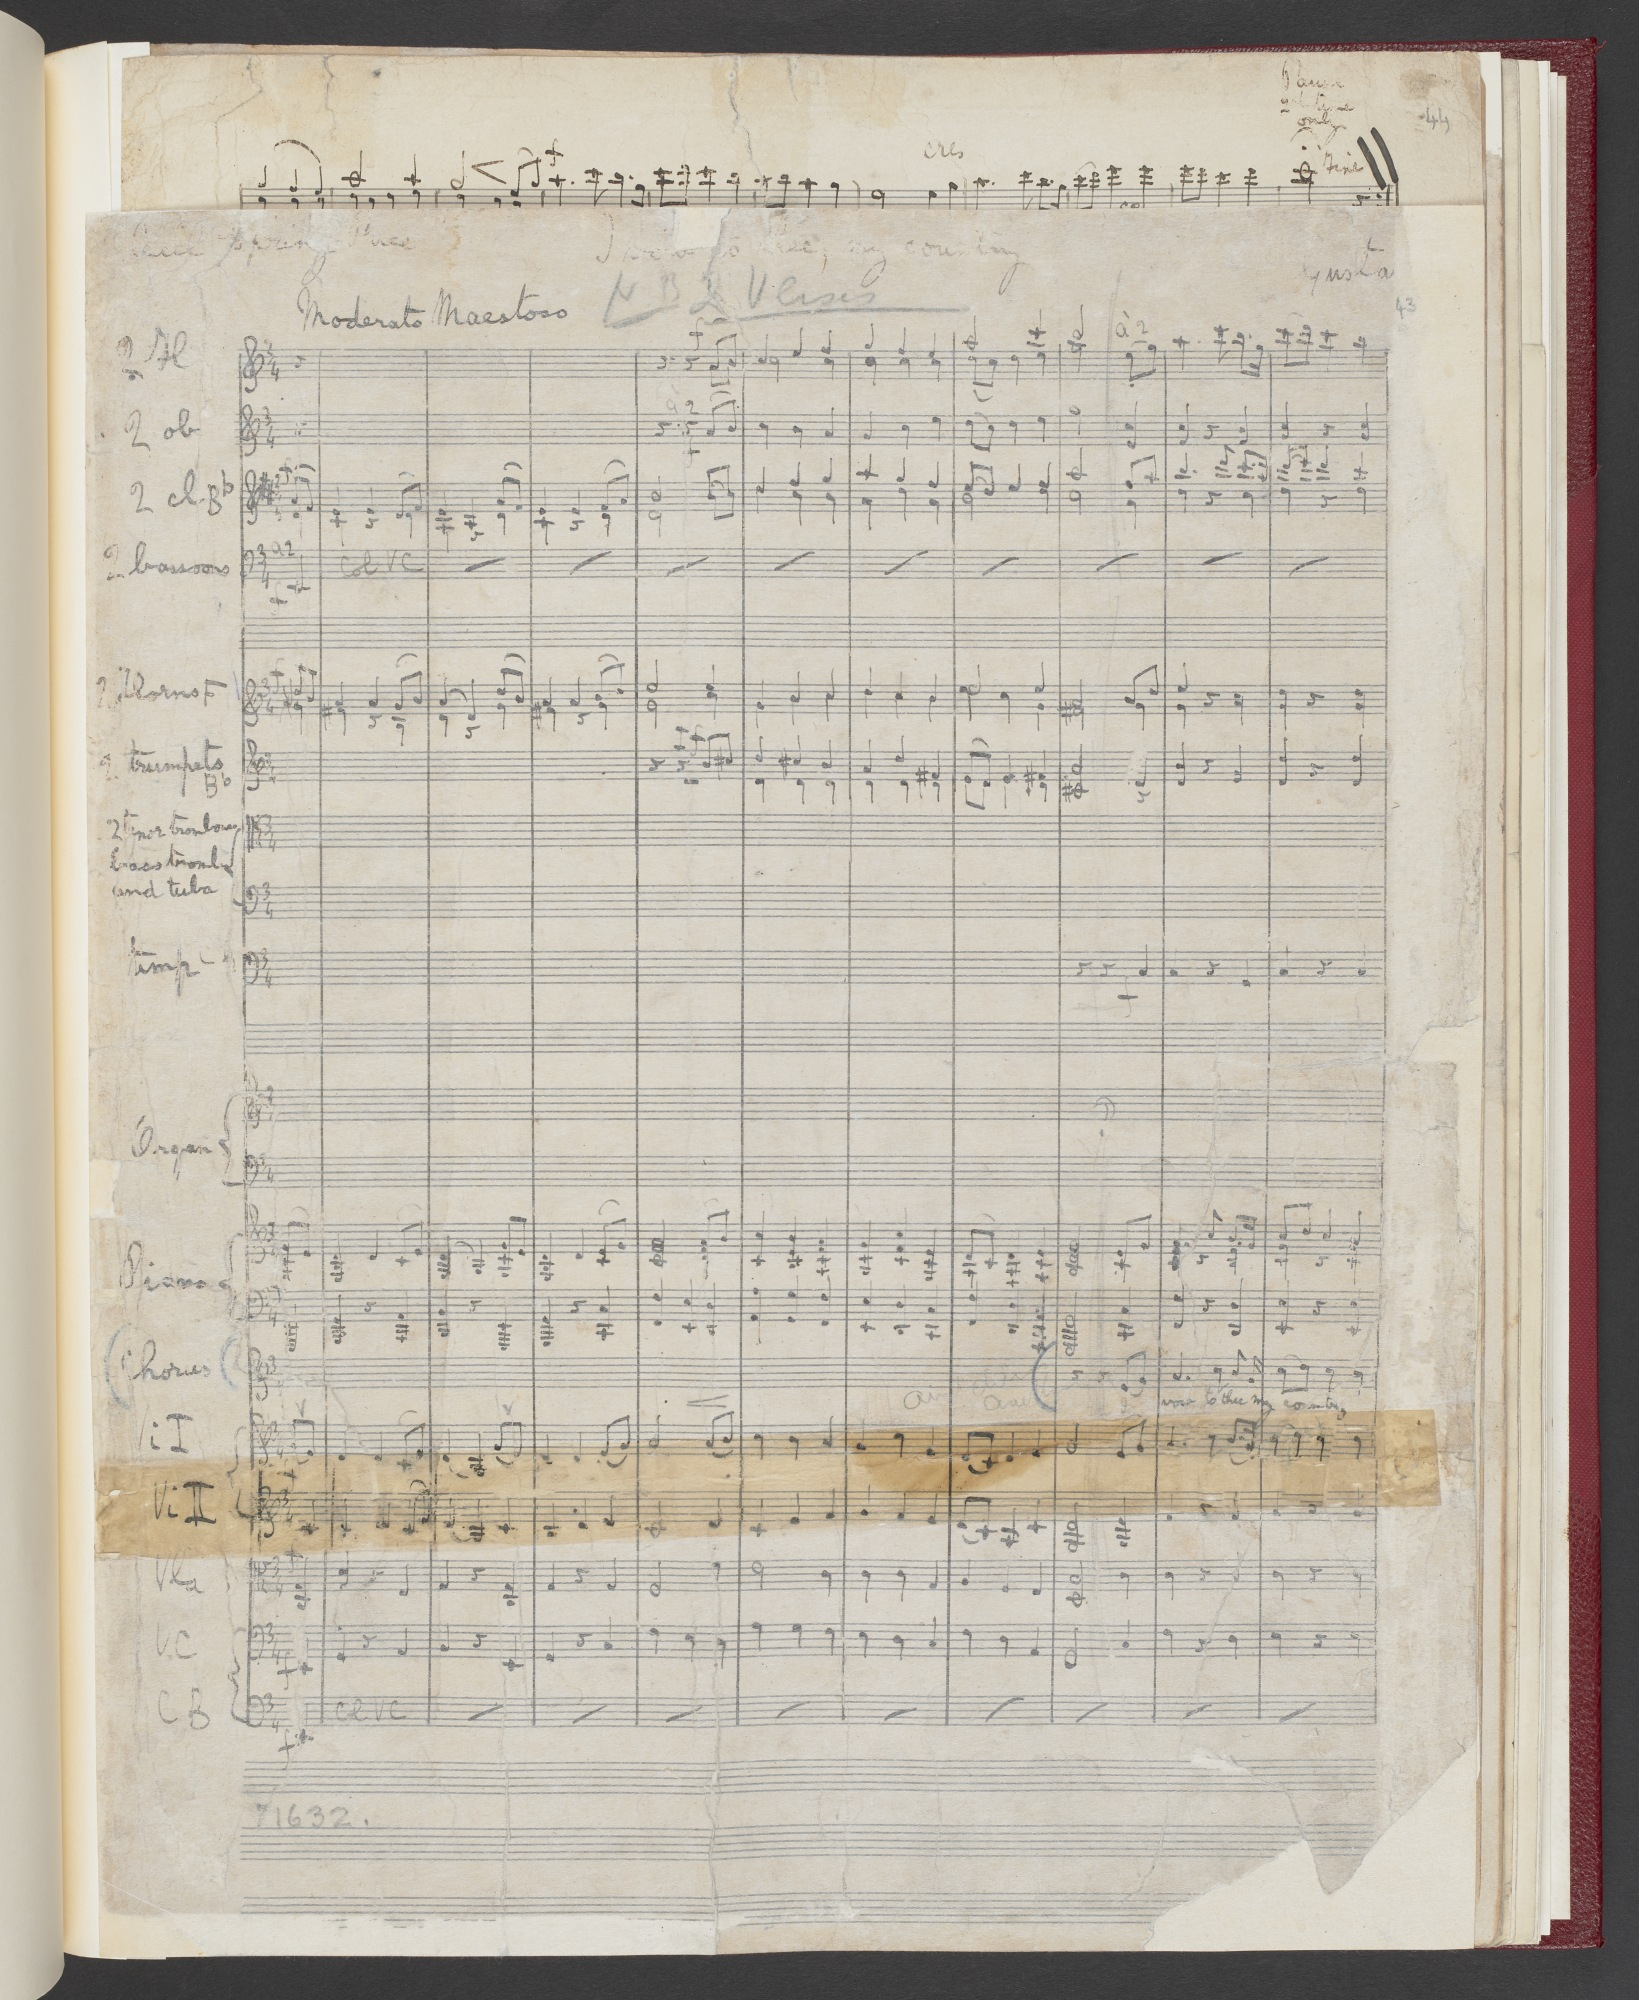 Gustav Holst, 'I vow to thee, my country' for voices and orchestra, Add MS 57880